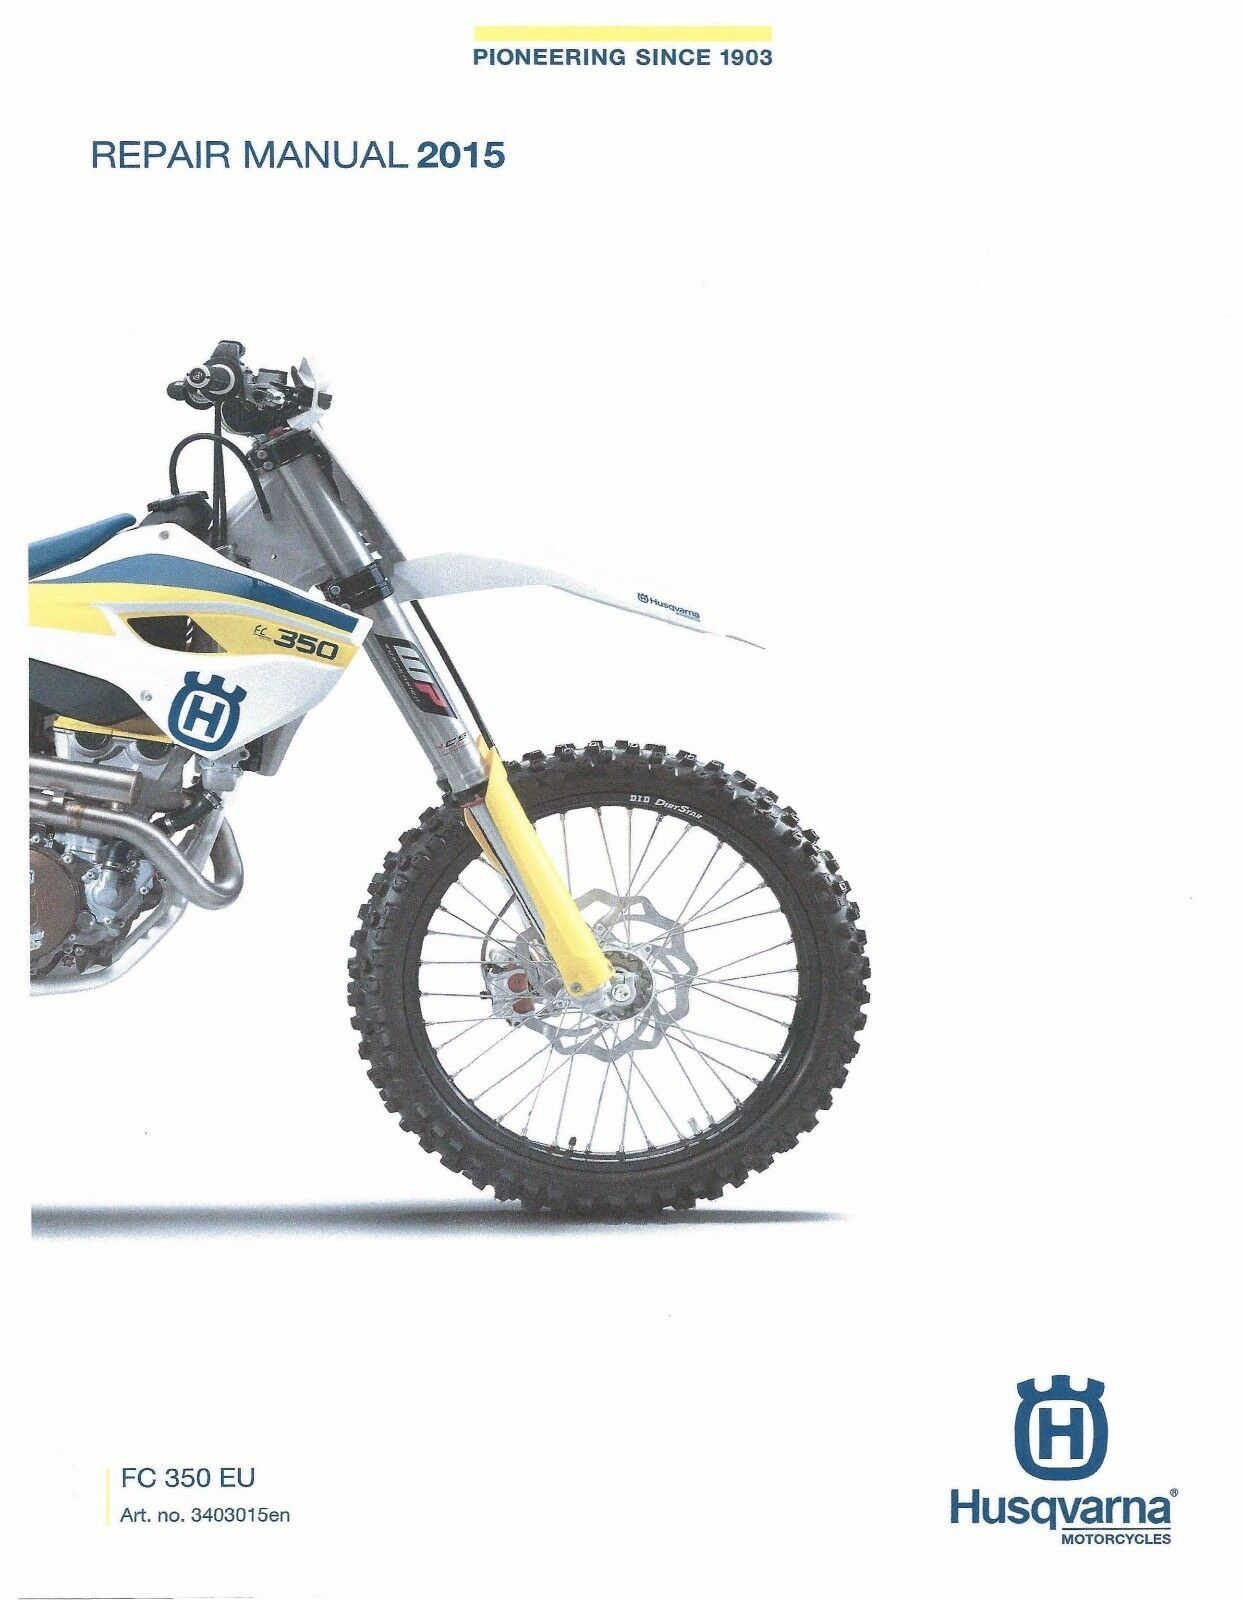 Husqvarna workshop service manual 2015 FC 350 EU 1 of 6Only 1 available ...